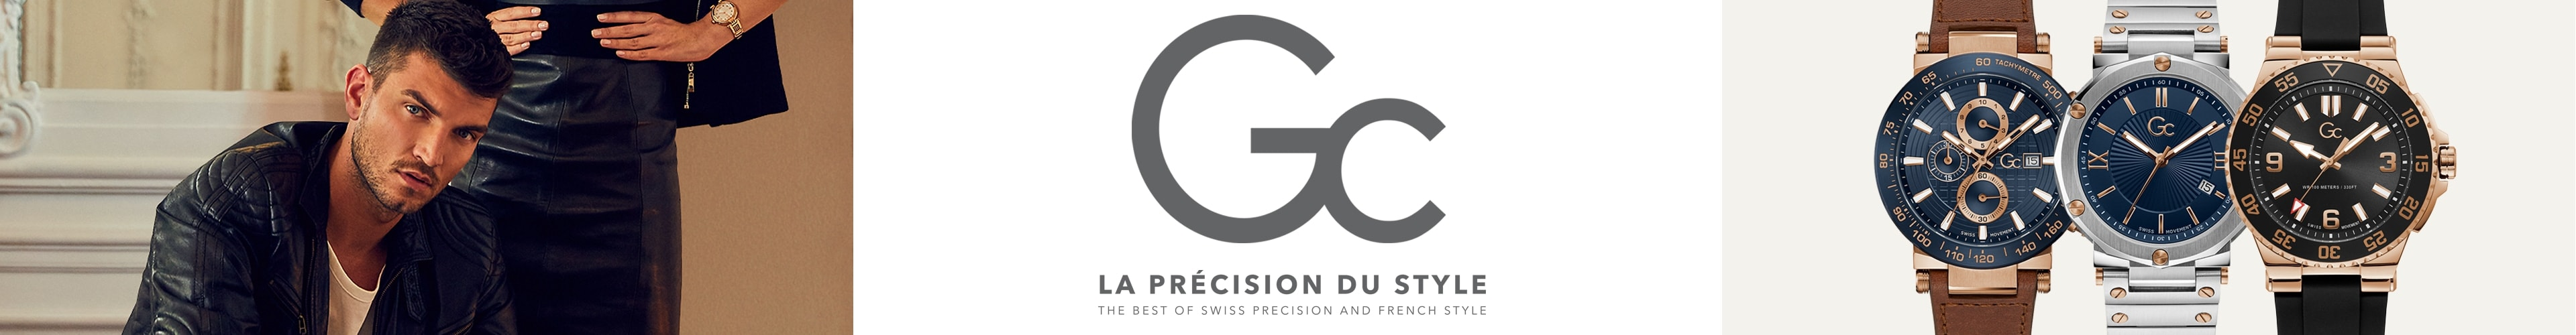 The best of swiss precision and french style